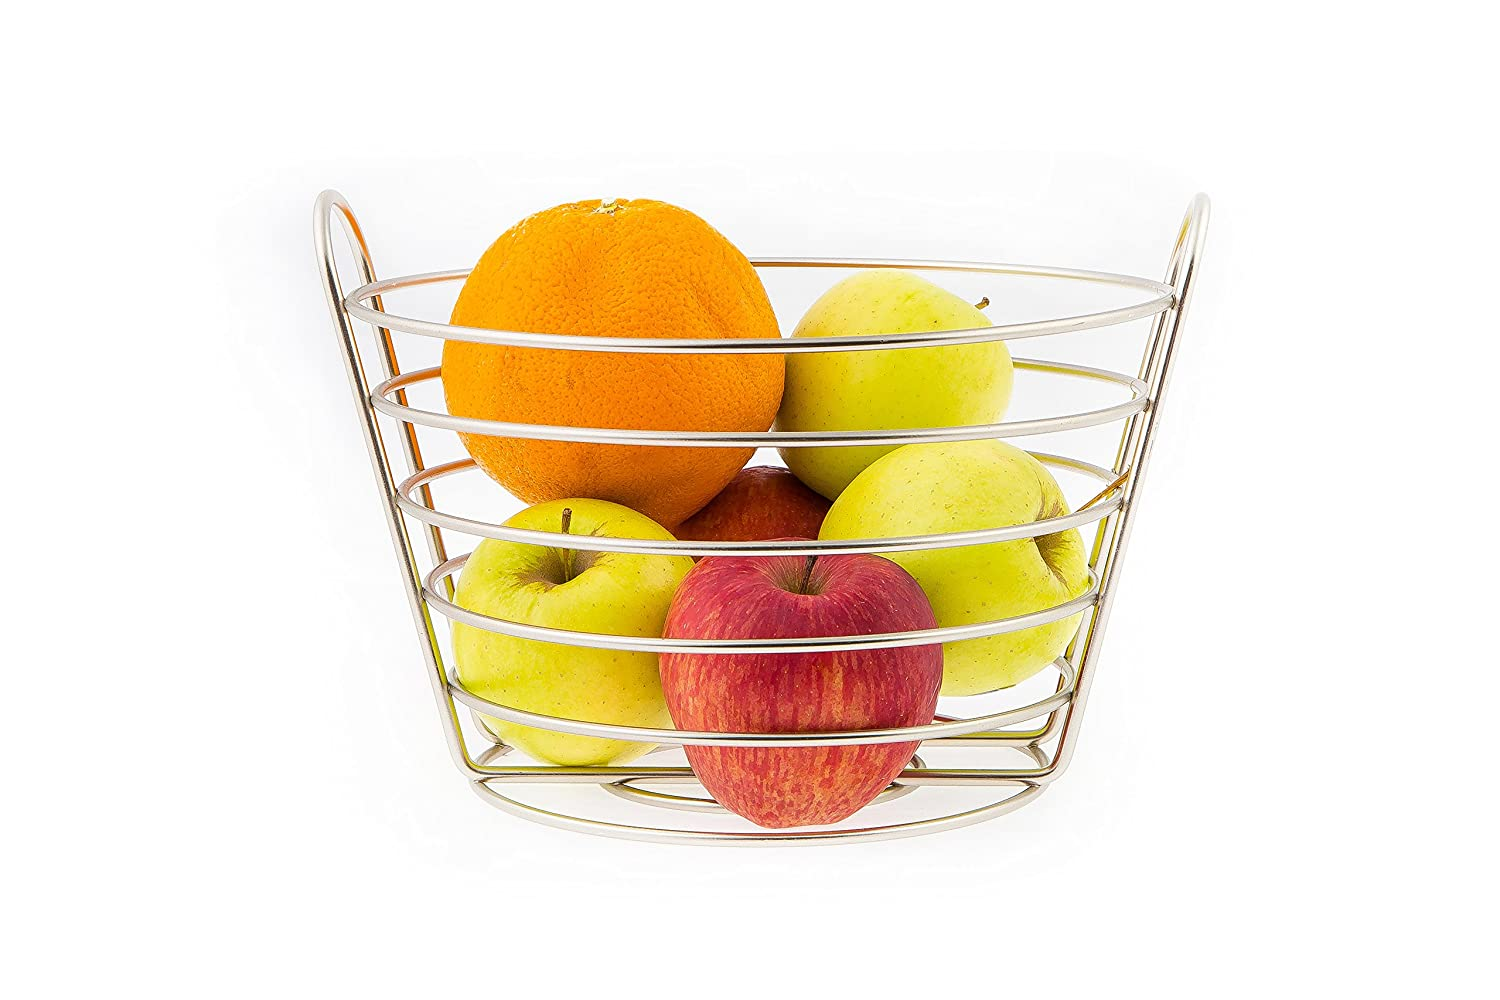 ZD Frutero Acero Inoxidable Fruit Basket: Amazon.es: Hogar